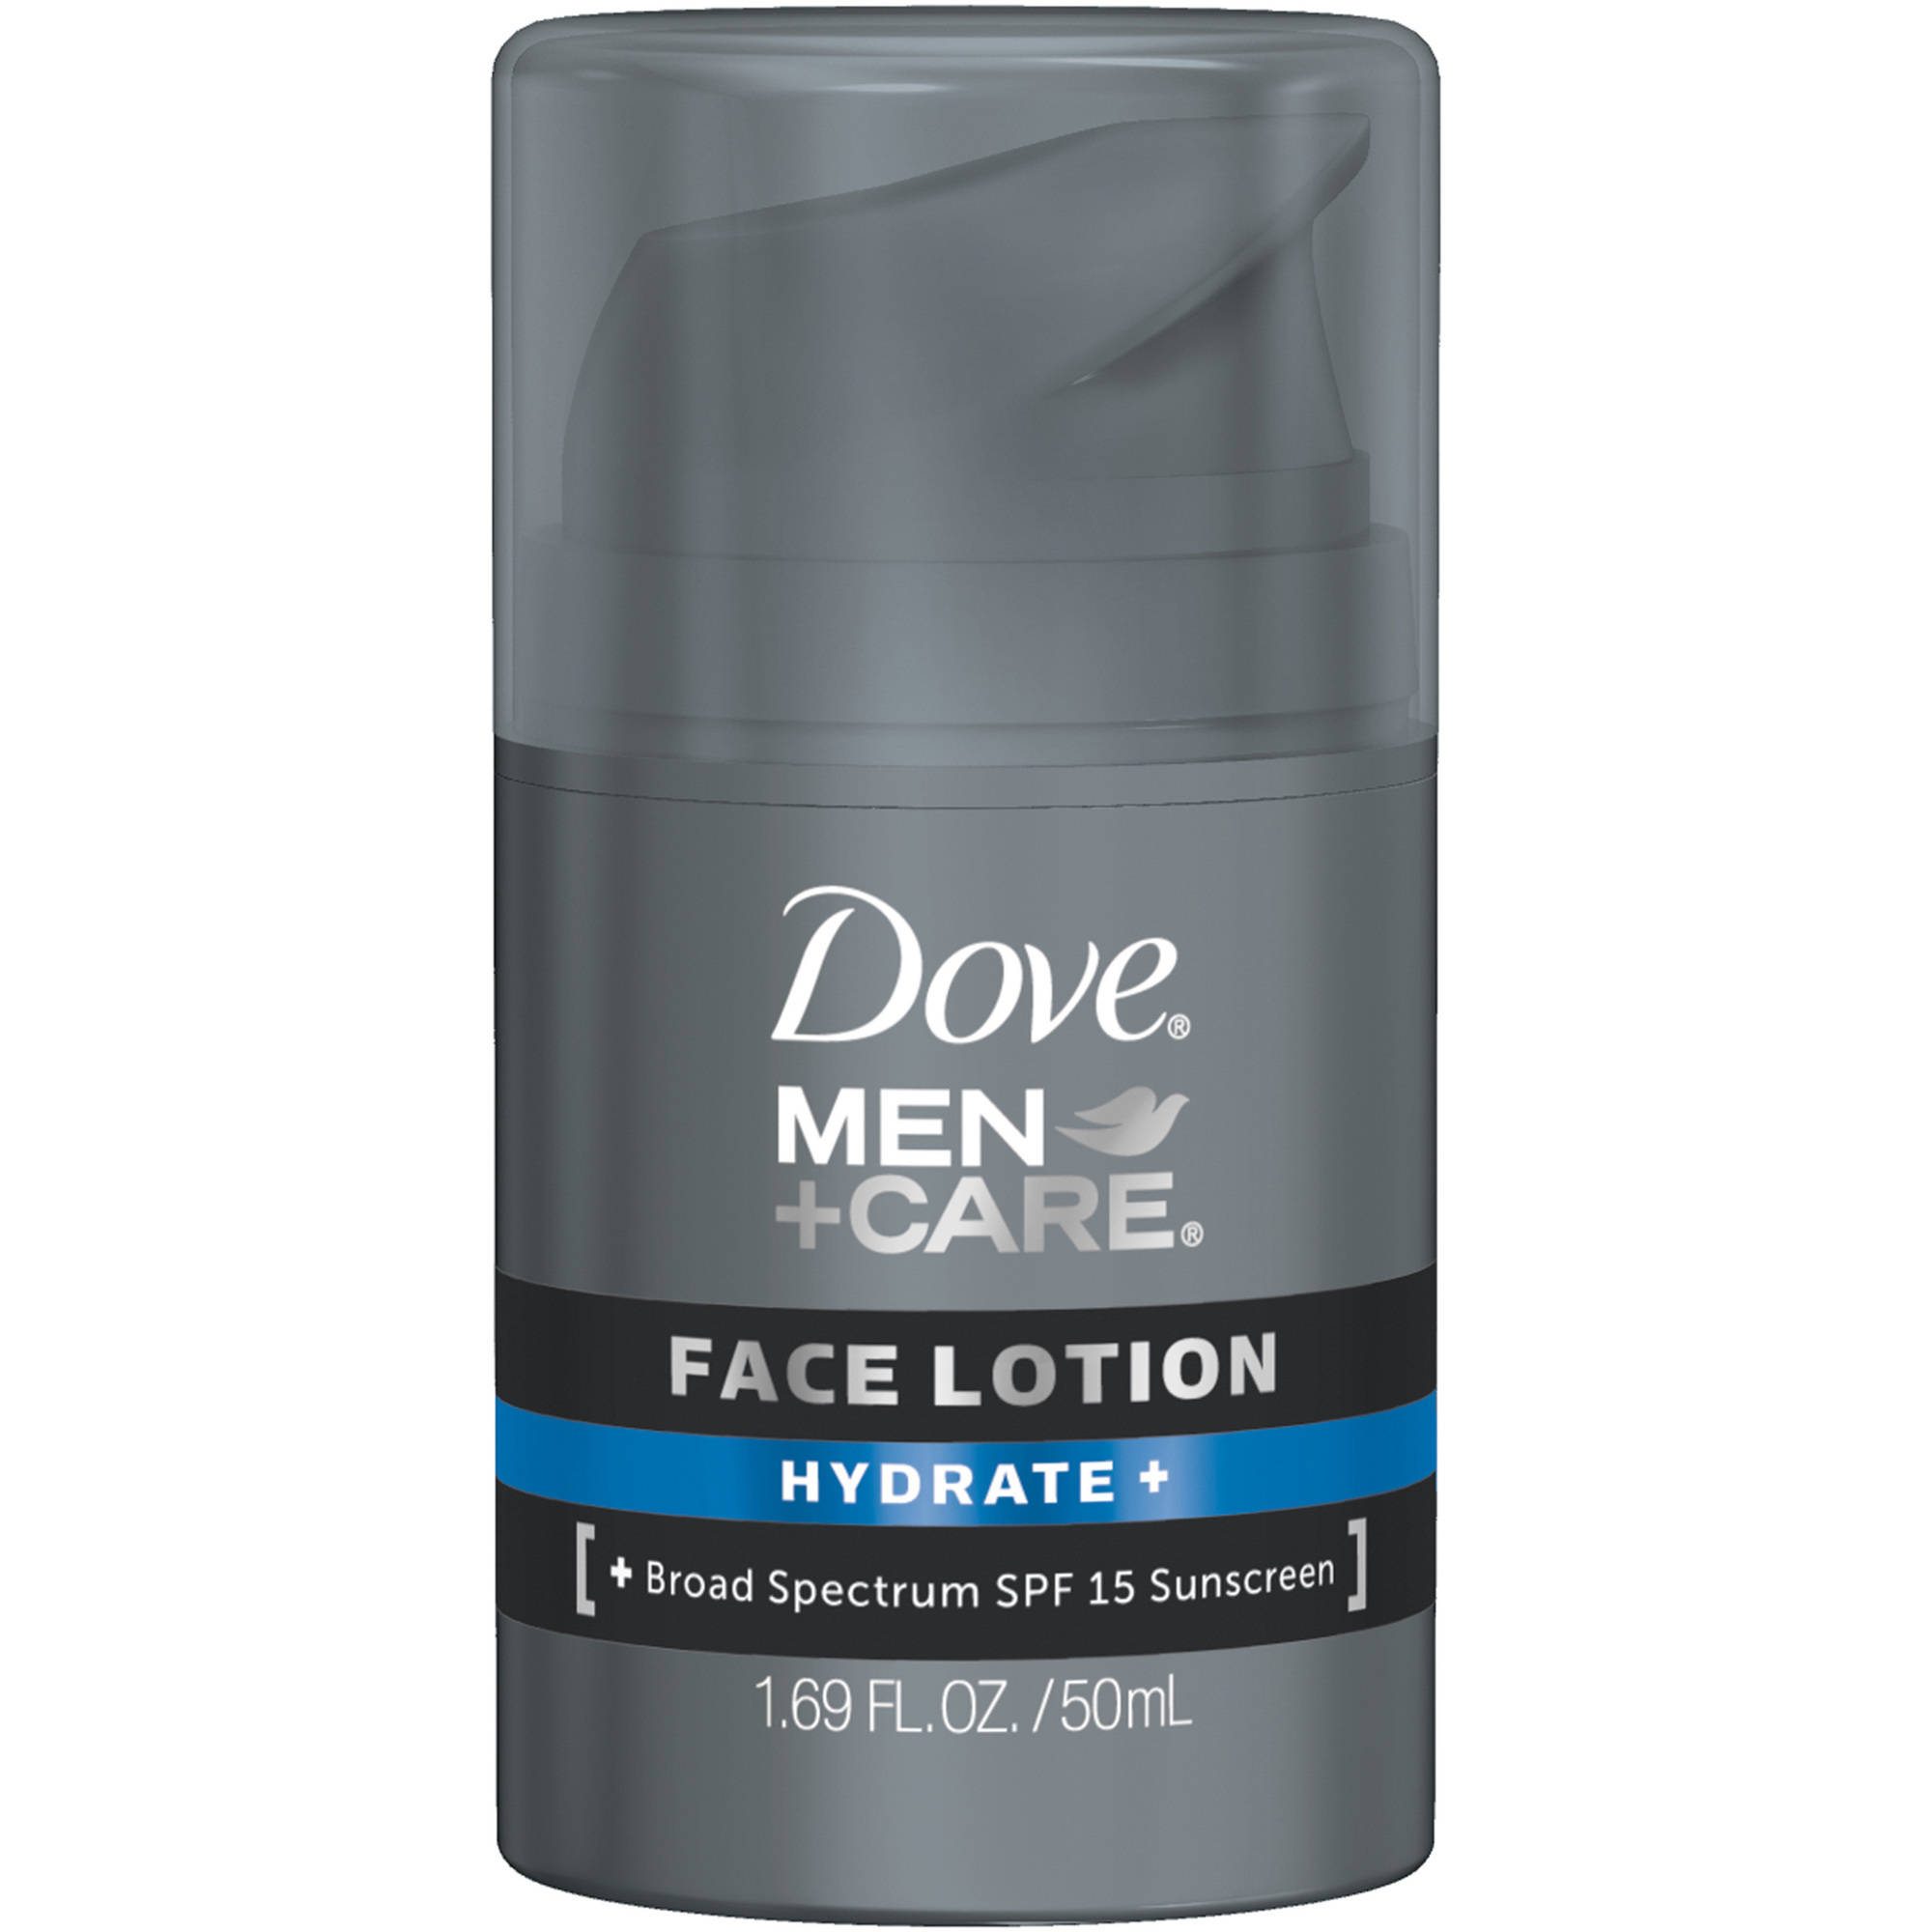 Dove Men+Care Hydrate + Face Lotion, 1.69 fl oz